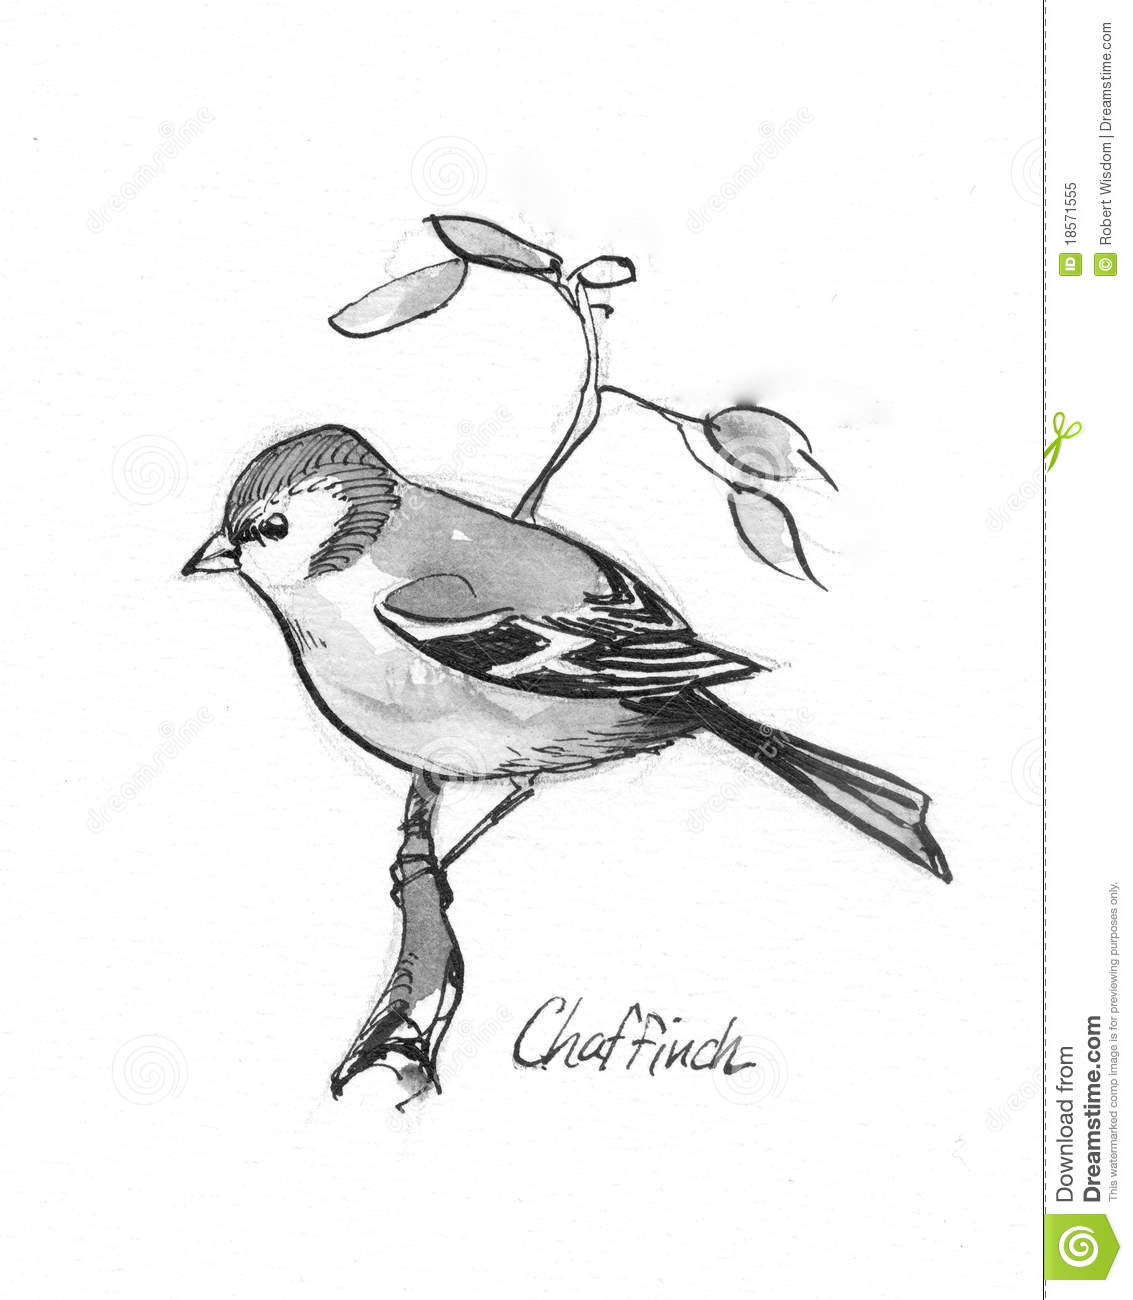 Chaffinch Illustration Royalty Free Stock Photo.